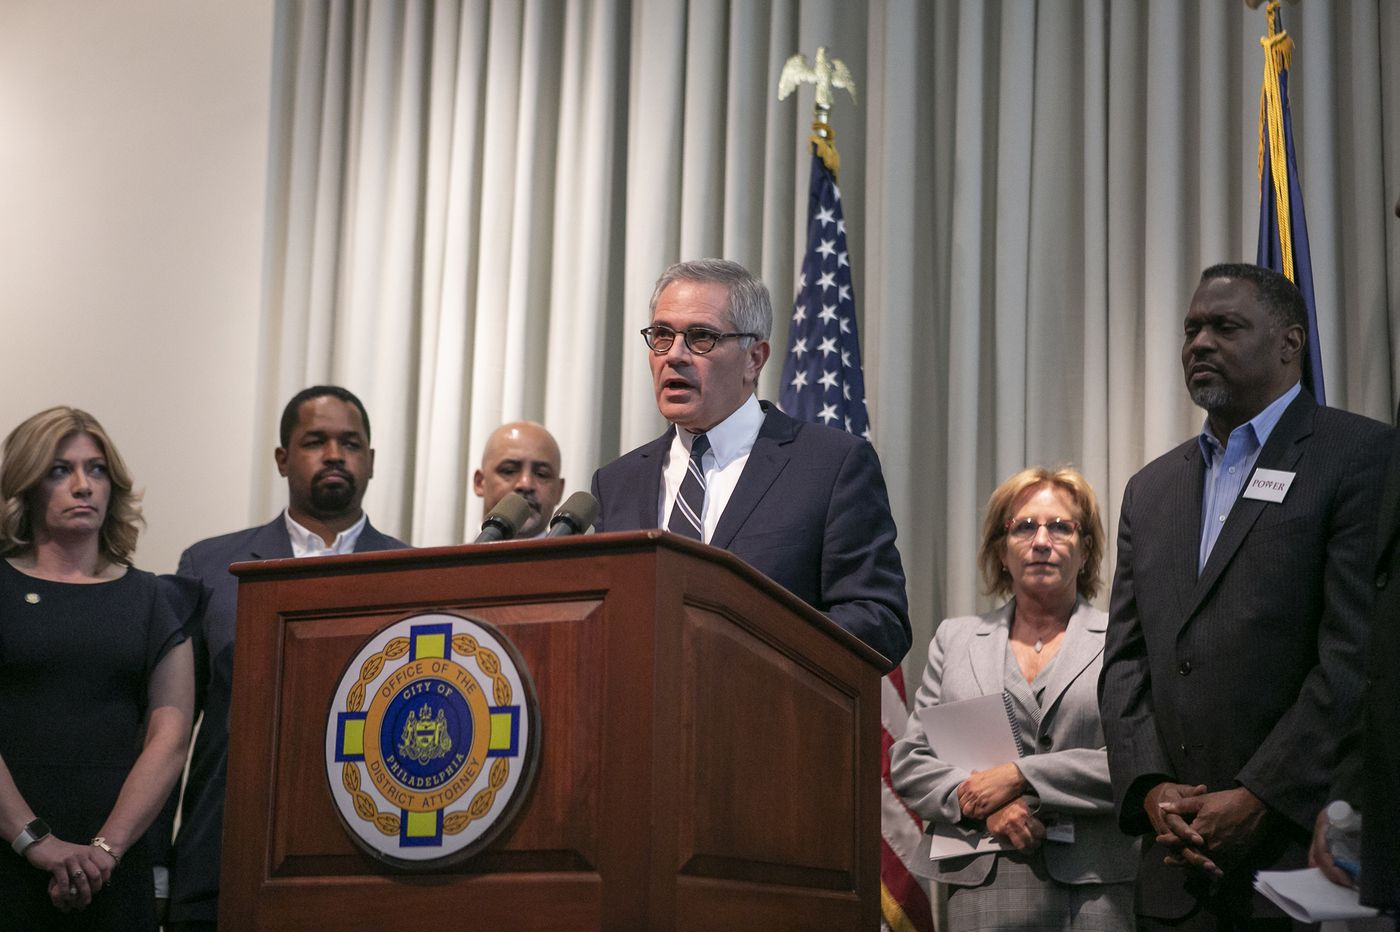 DA Krasner wants Pa  Supreme Court to strike down state's death